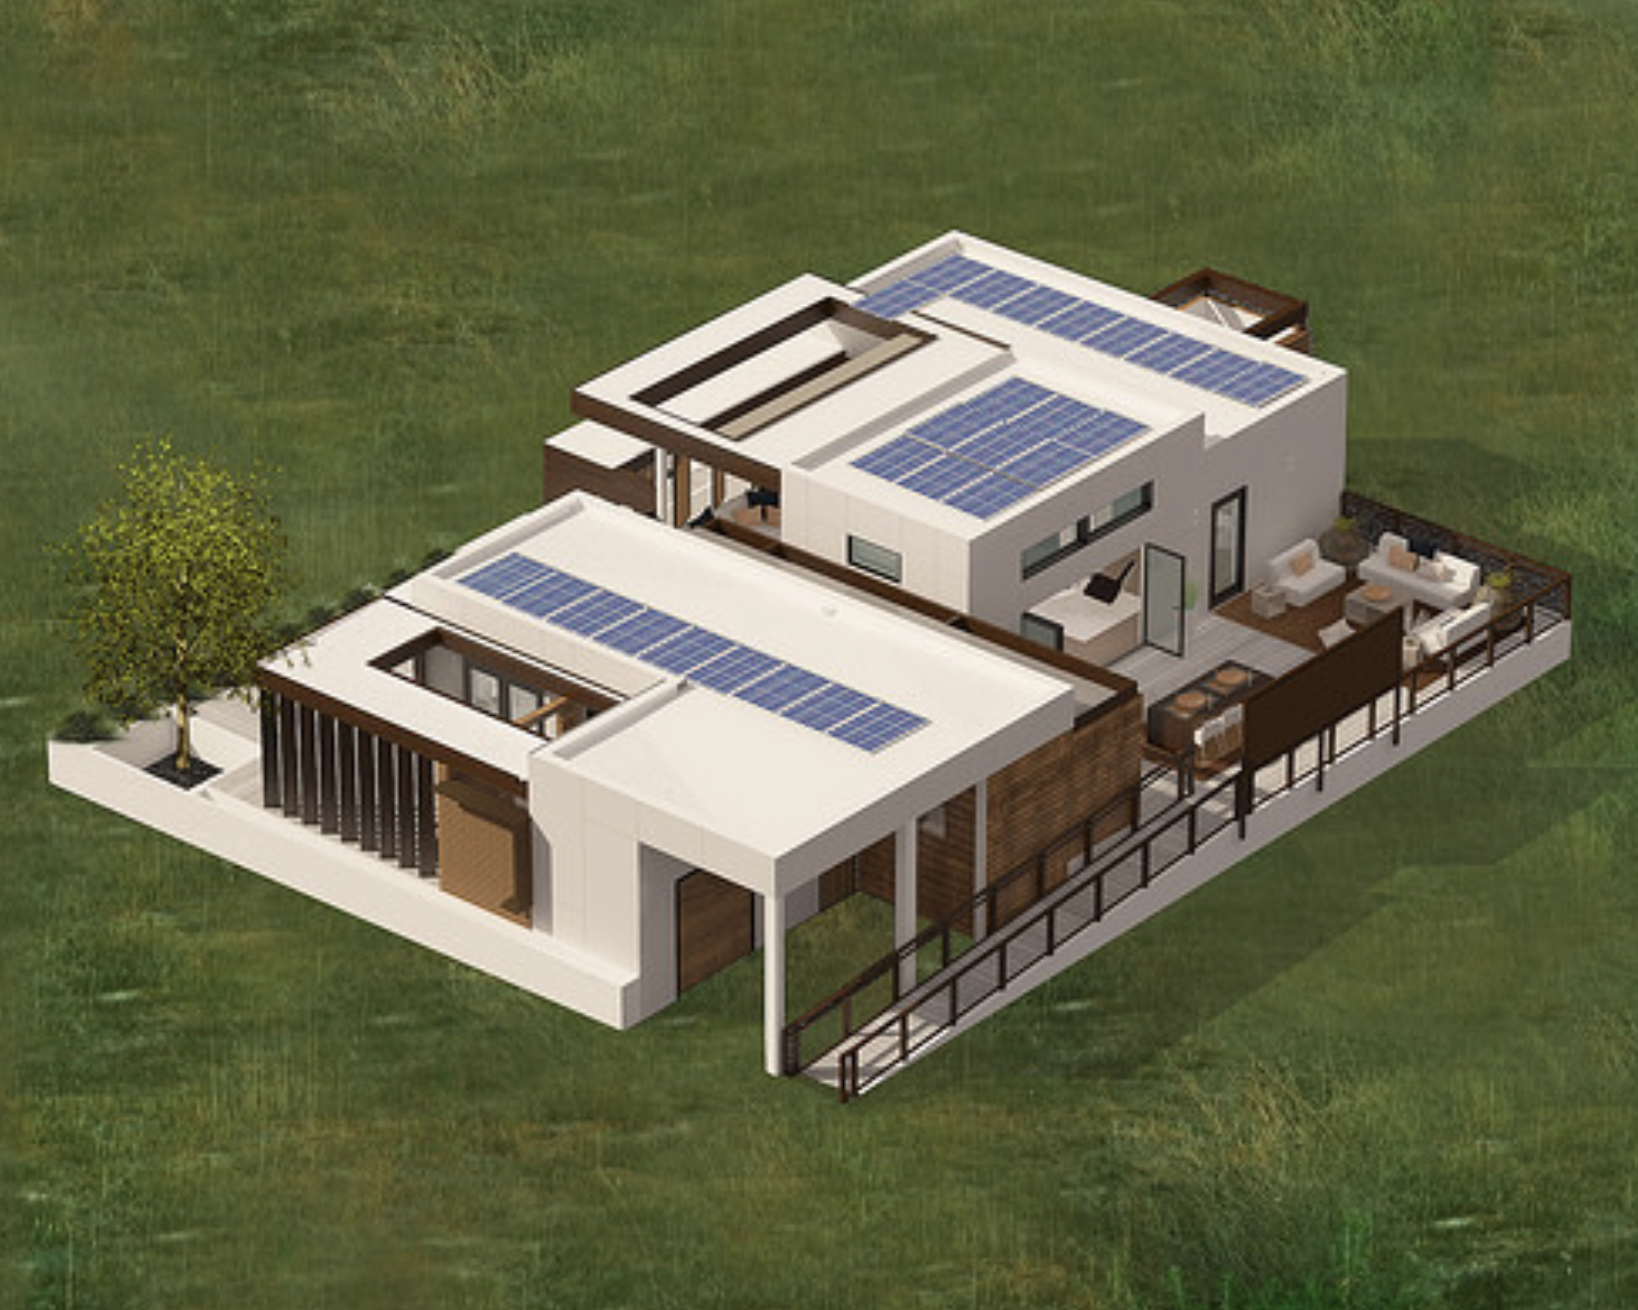 Solar decathlon 2015 and team oc casa del sol a solar for Solar decathlon 2015